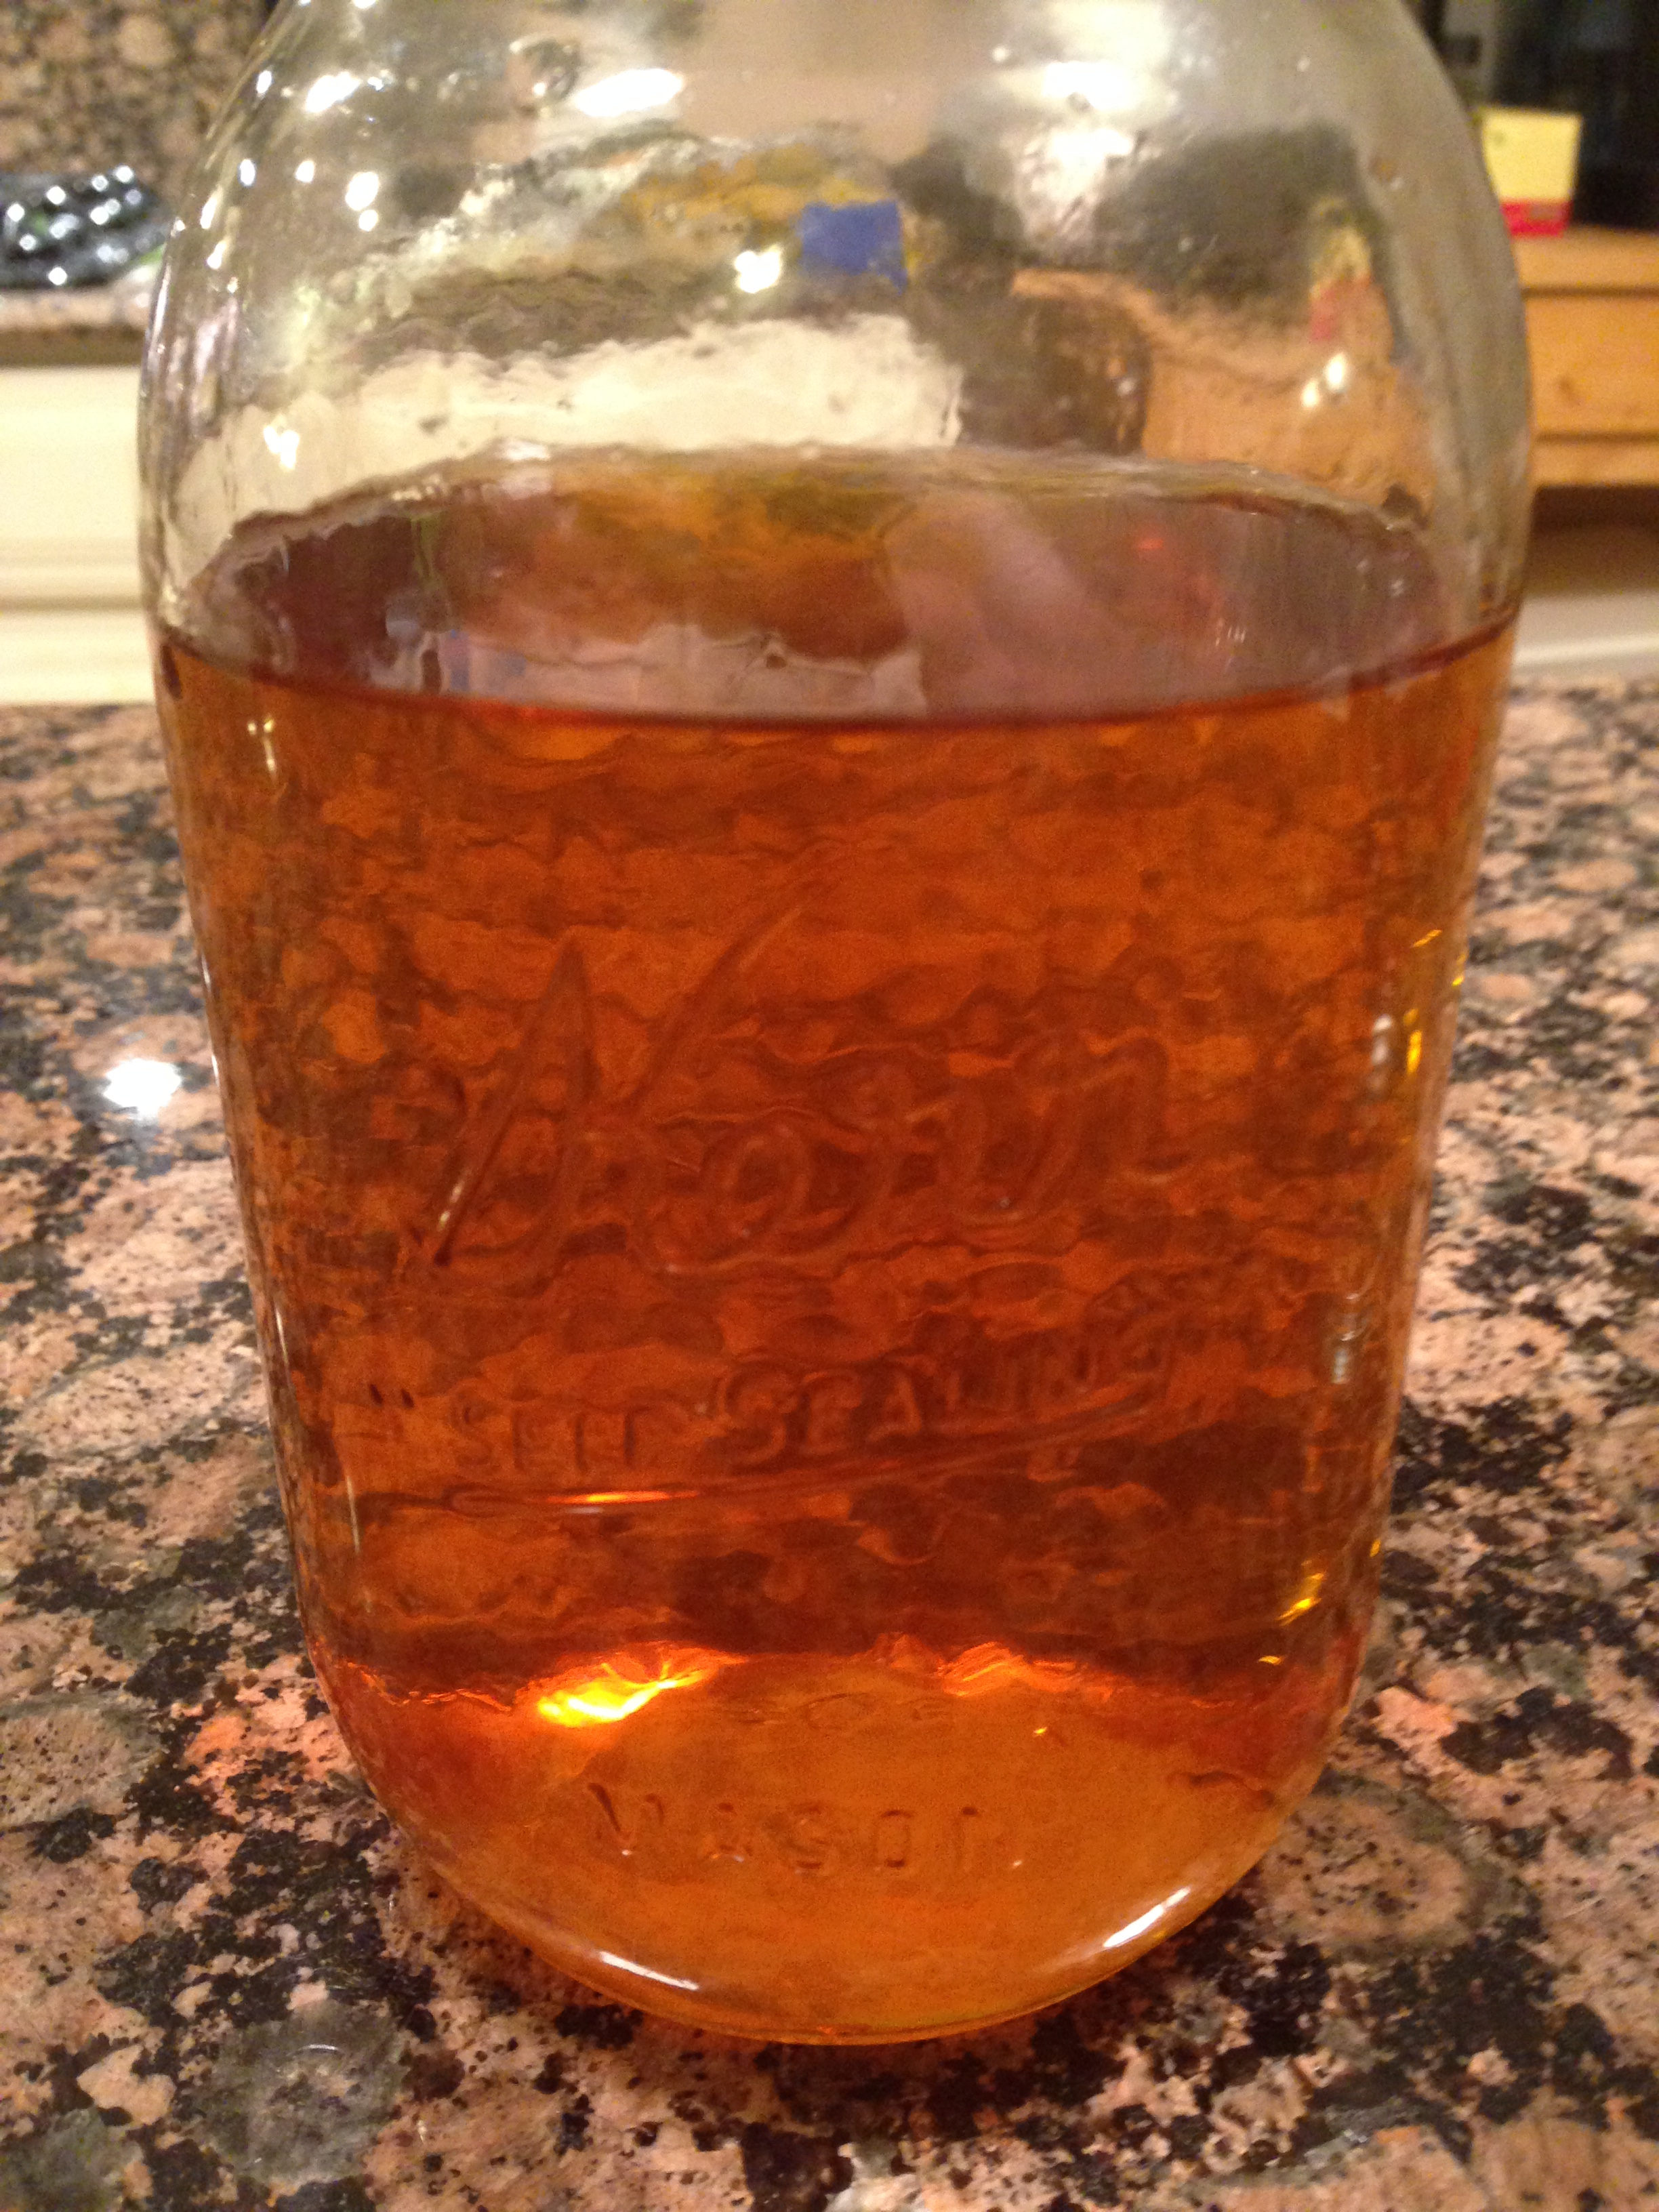 Satsuma Extract After Filtration